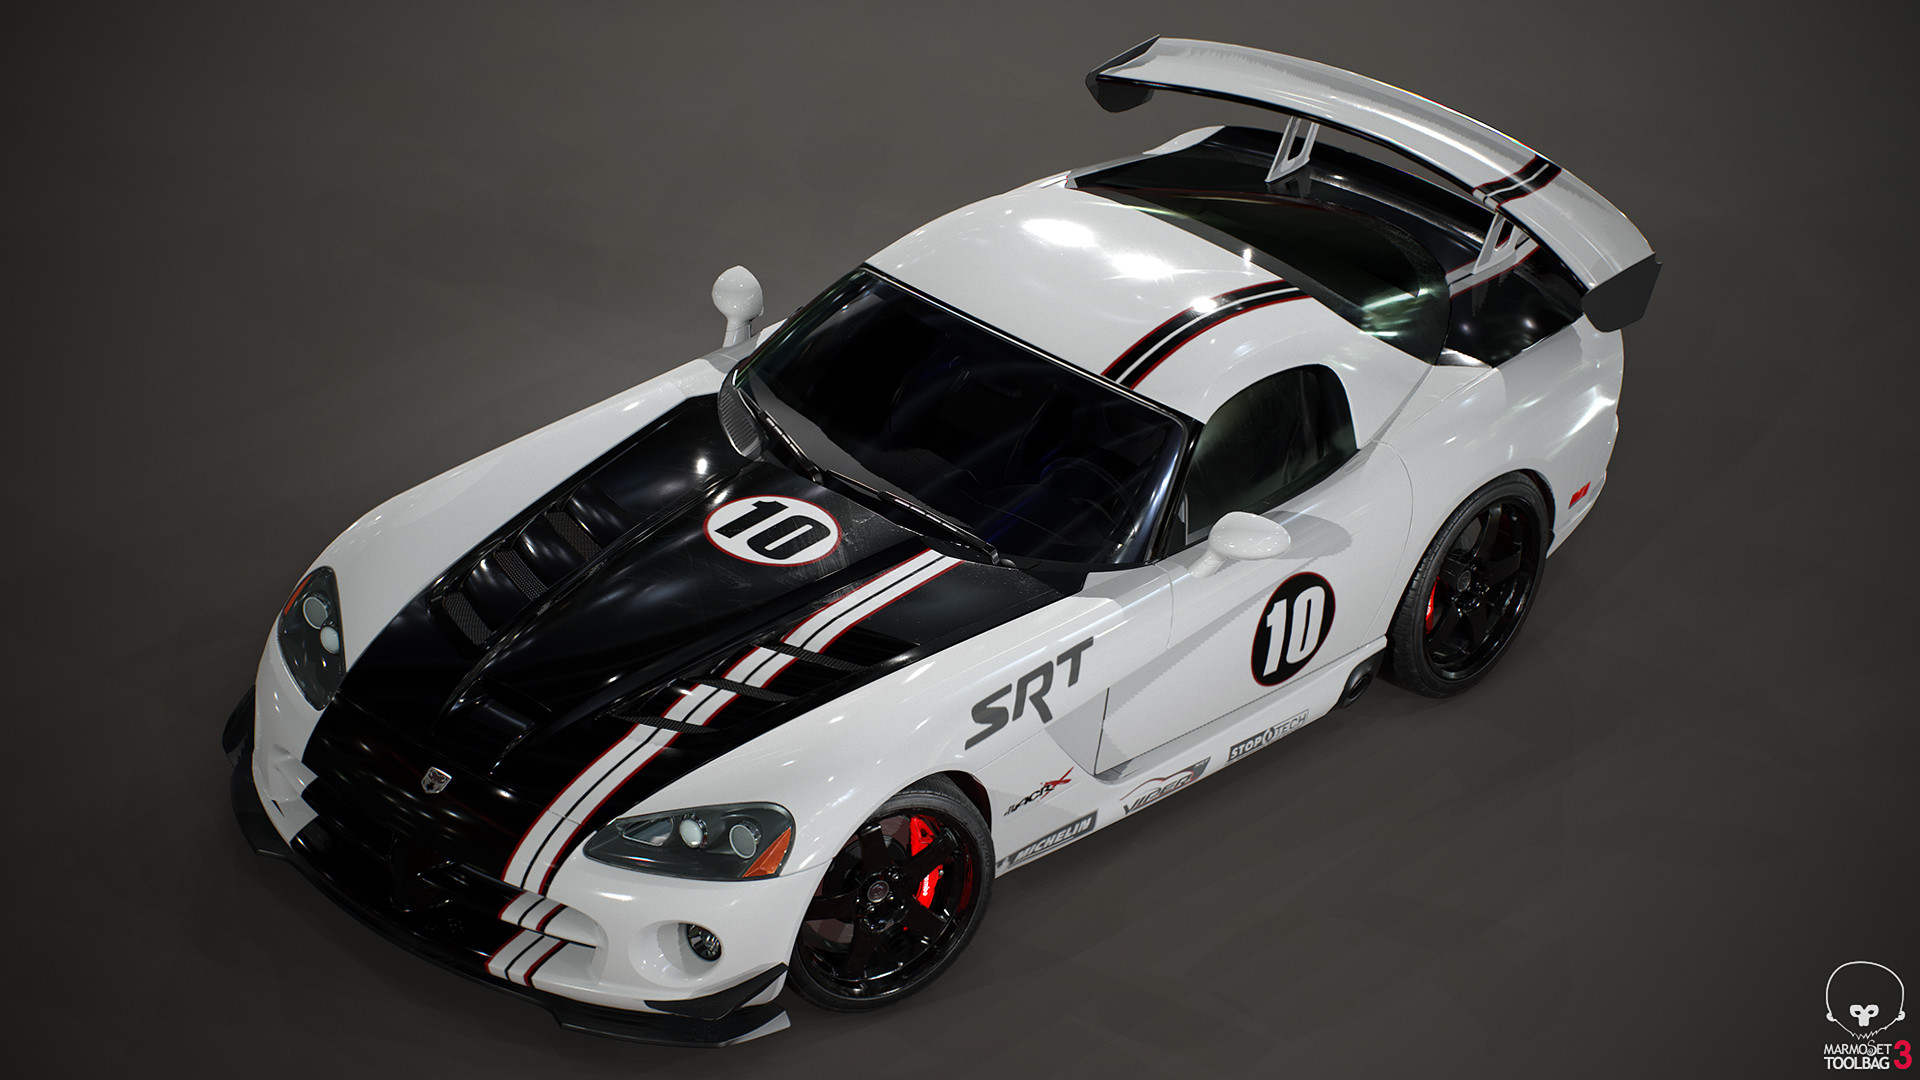 David letondor dodgeviper srt10 david letondor v3 6